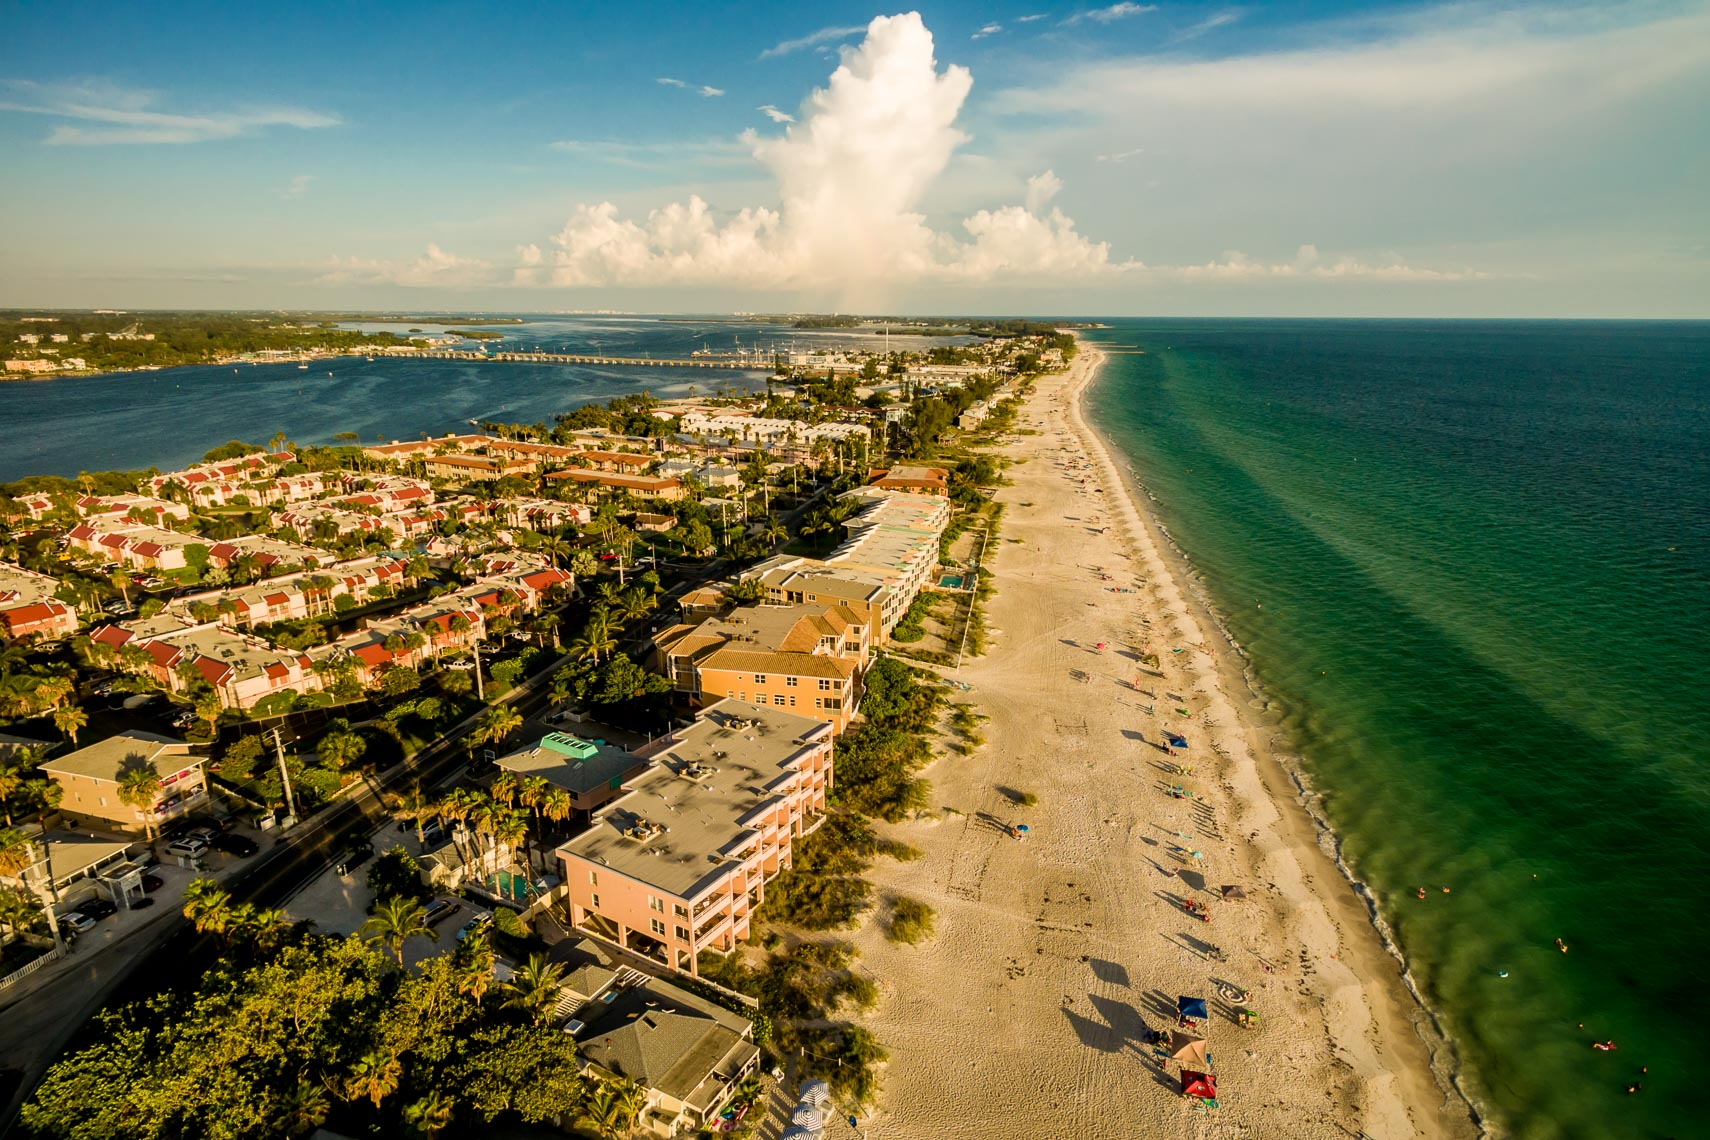 Drone Views of Anna Maria Island